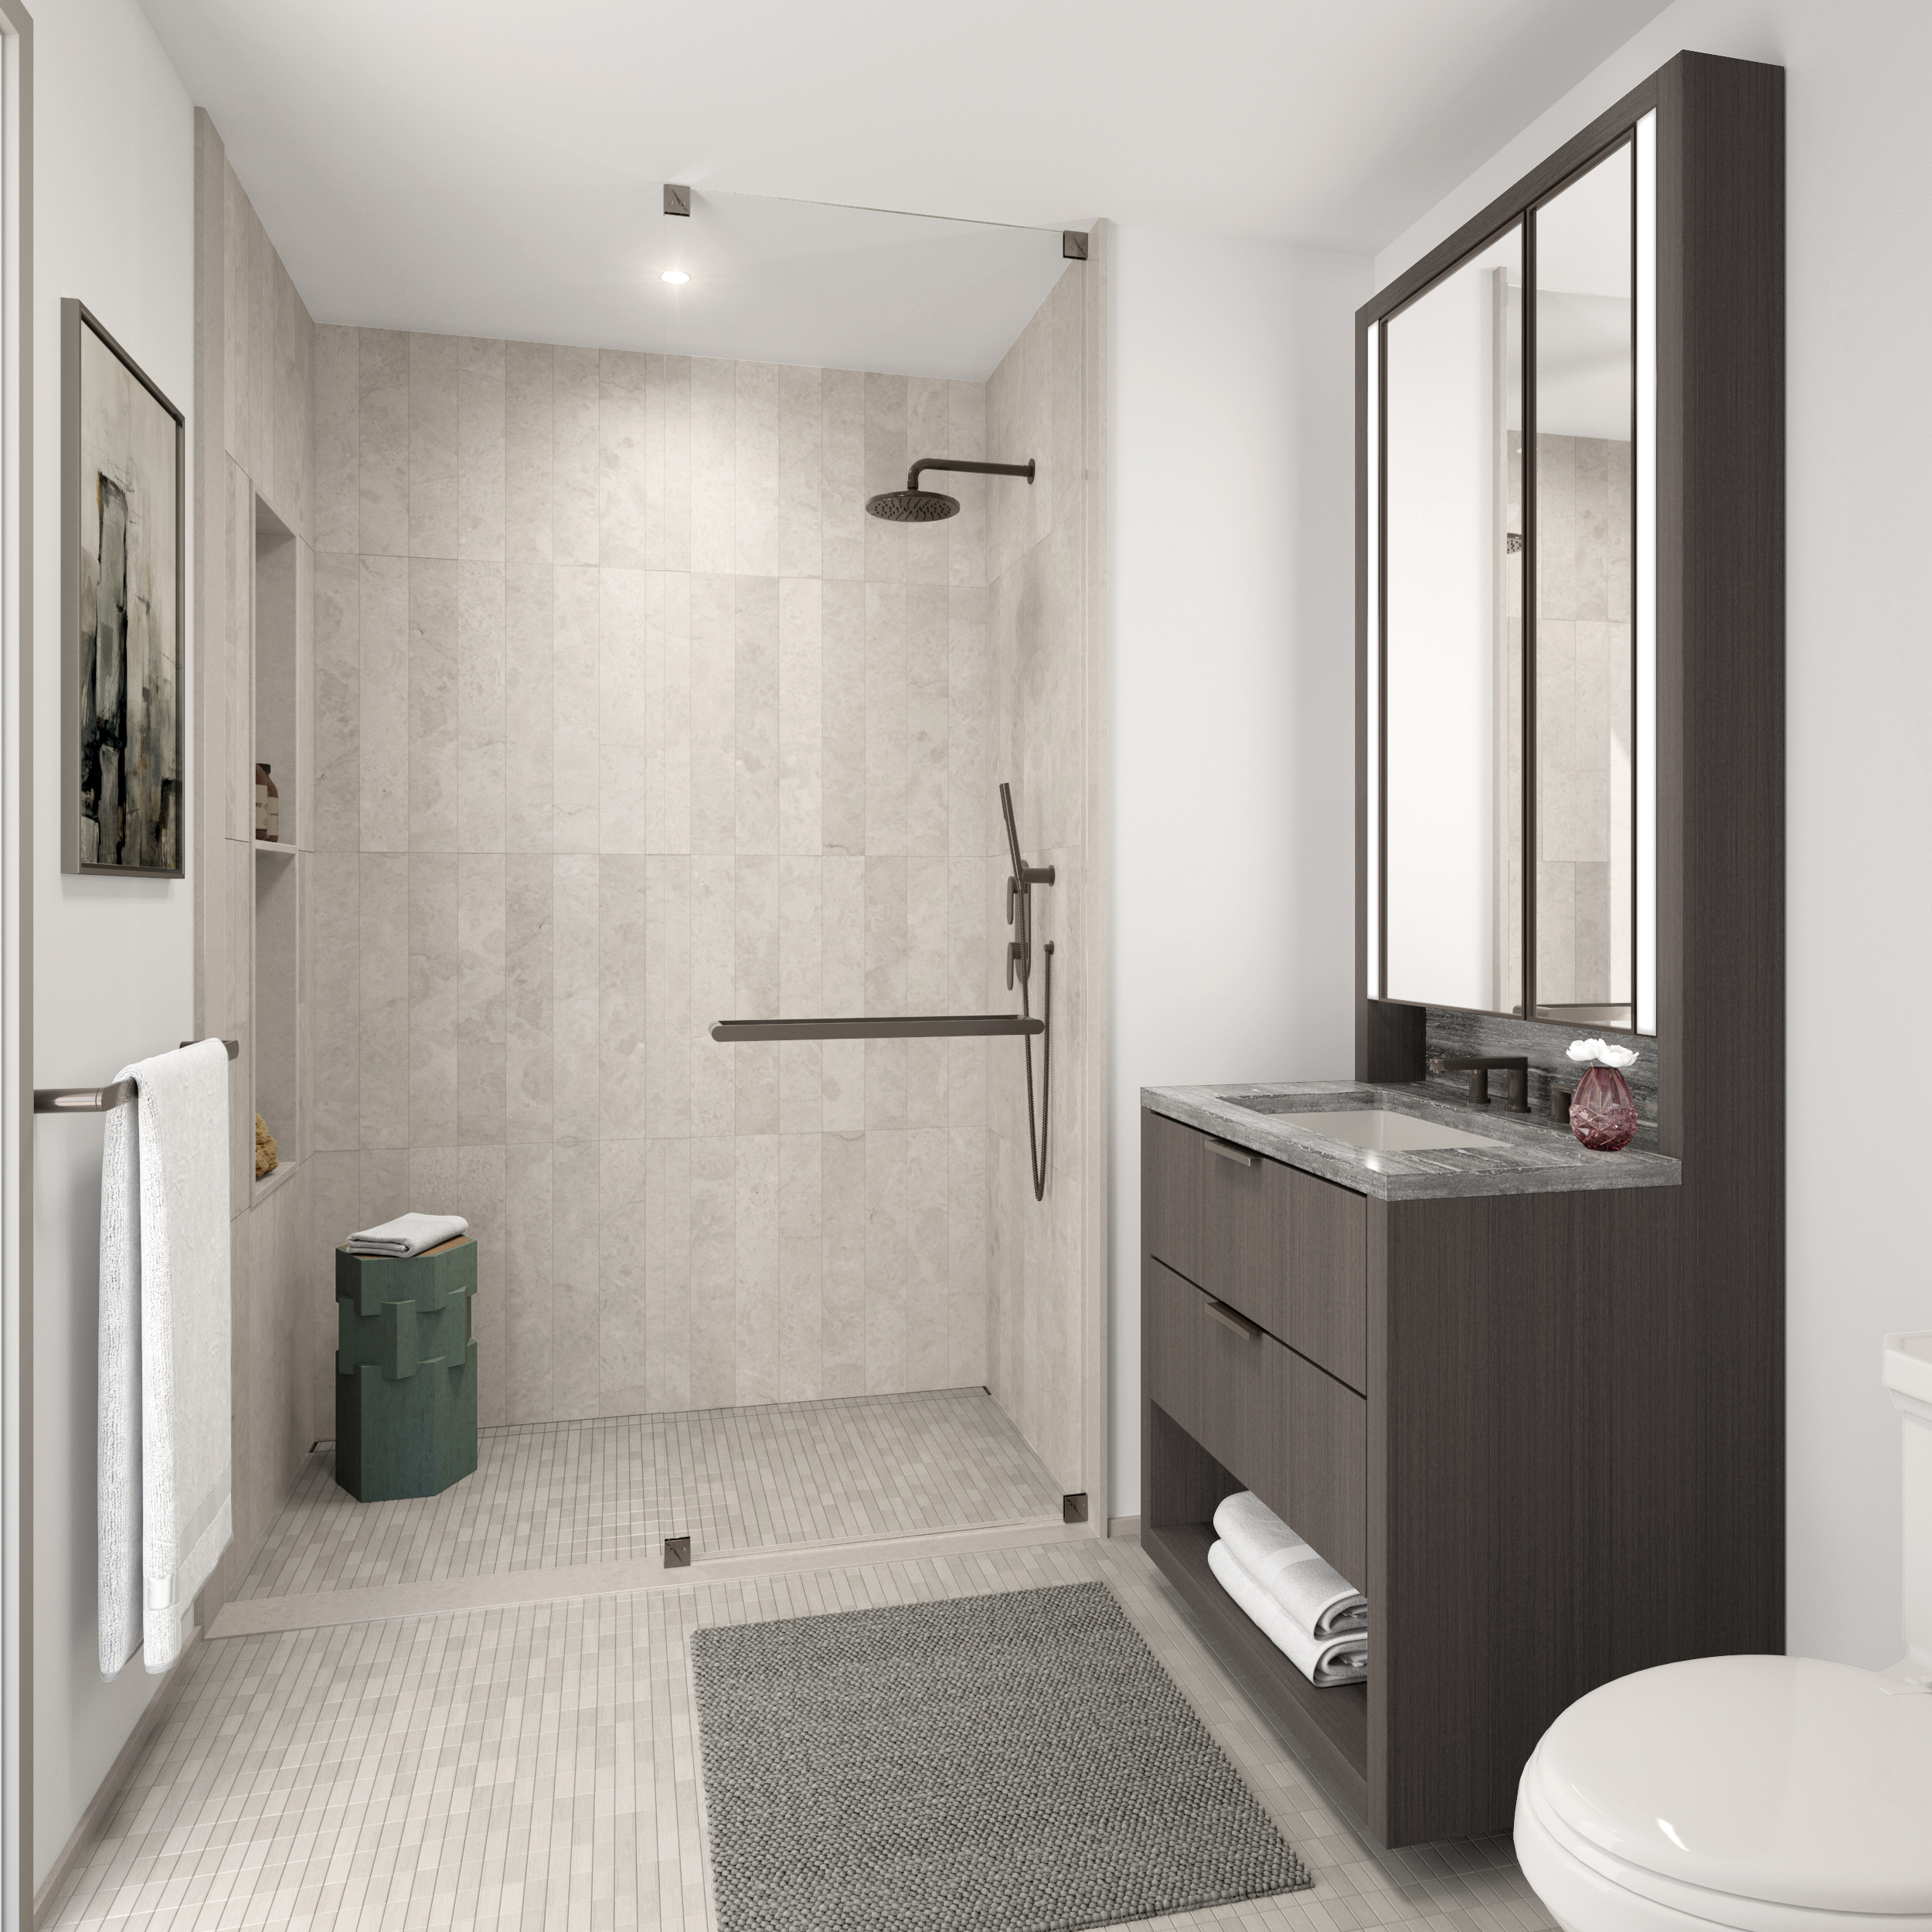 Vandewater Bathroom Rendering